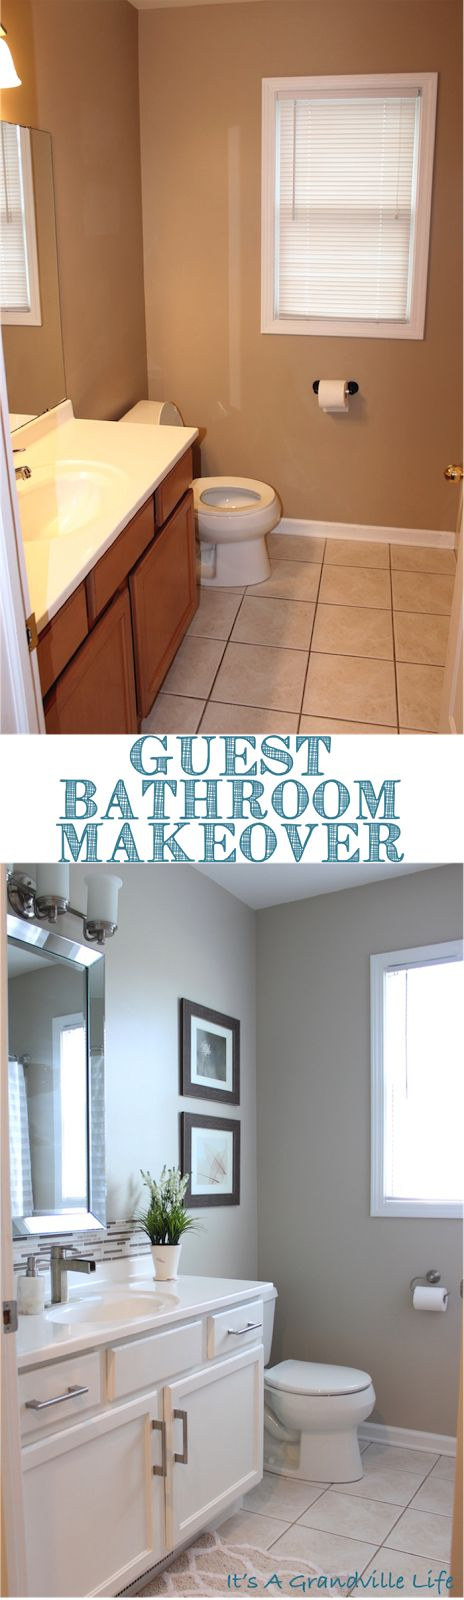 Easily Transform Your Bathroom With Some Paint And New Hardware! See The  Transformation And DIY